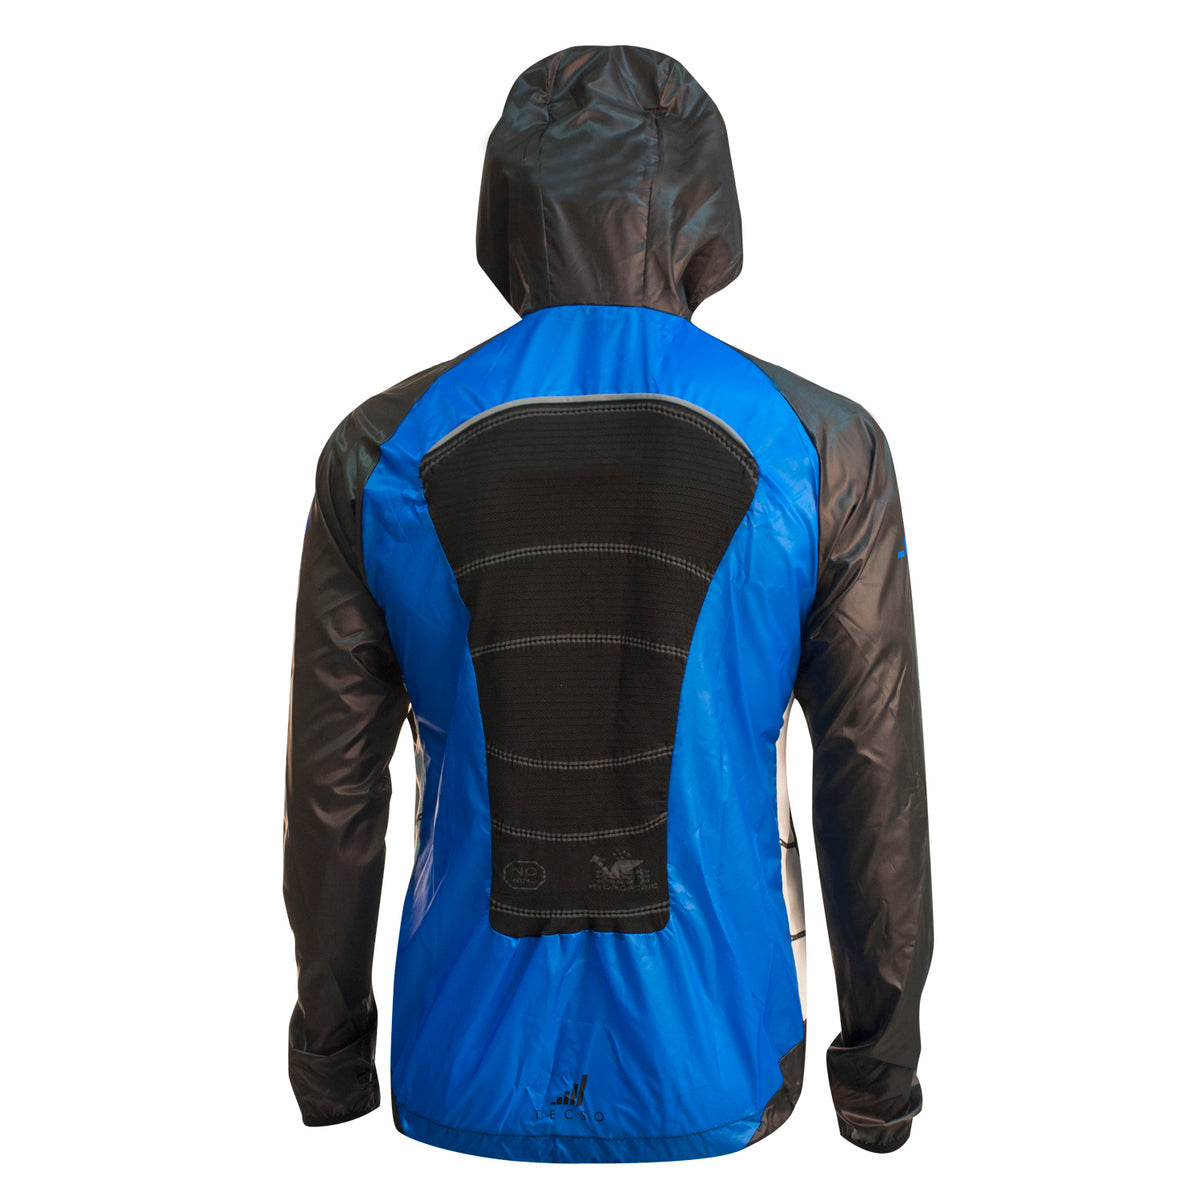 RAIN AND WIND JACKET